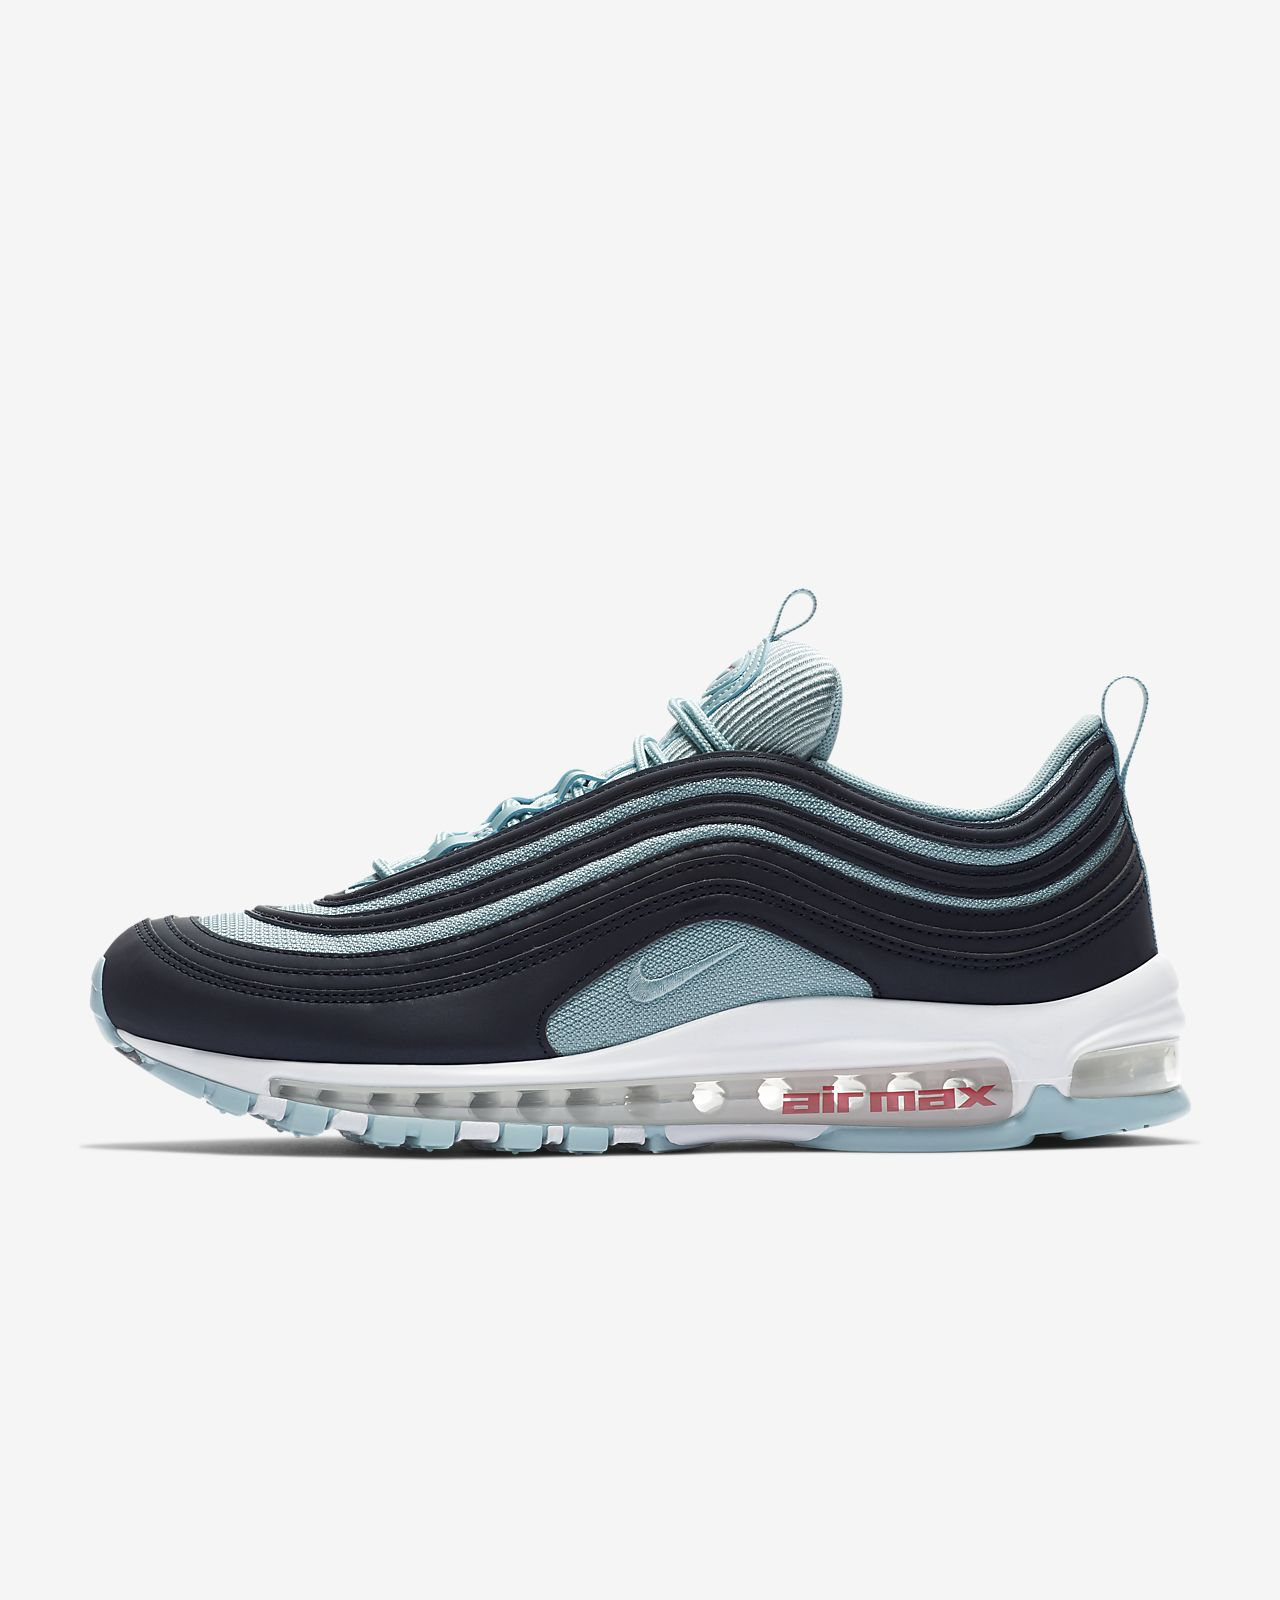 Nike Air Max 97 Premium Men's Shoe